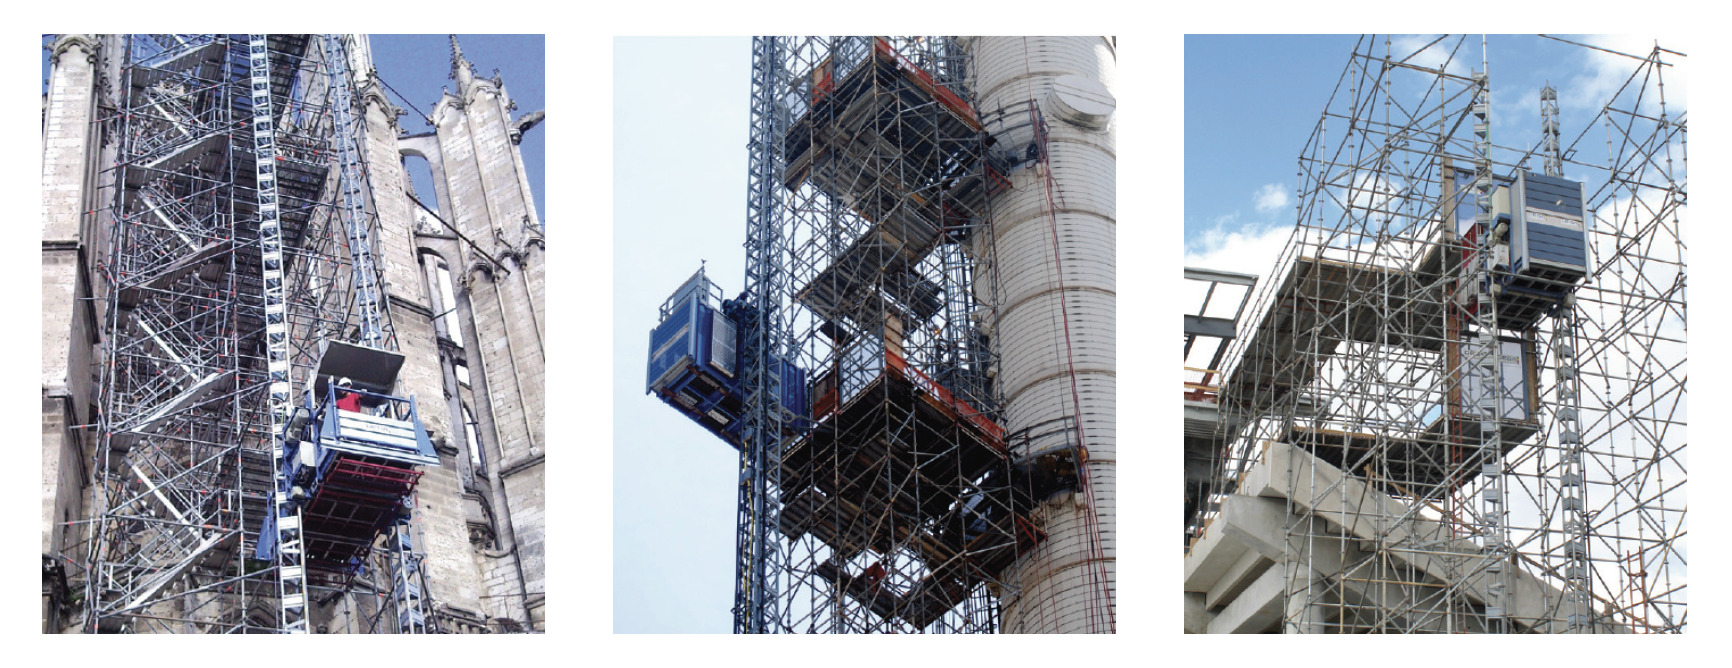 GEDA elevators and hoists, commercial scaffold company